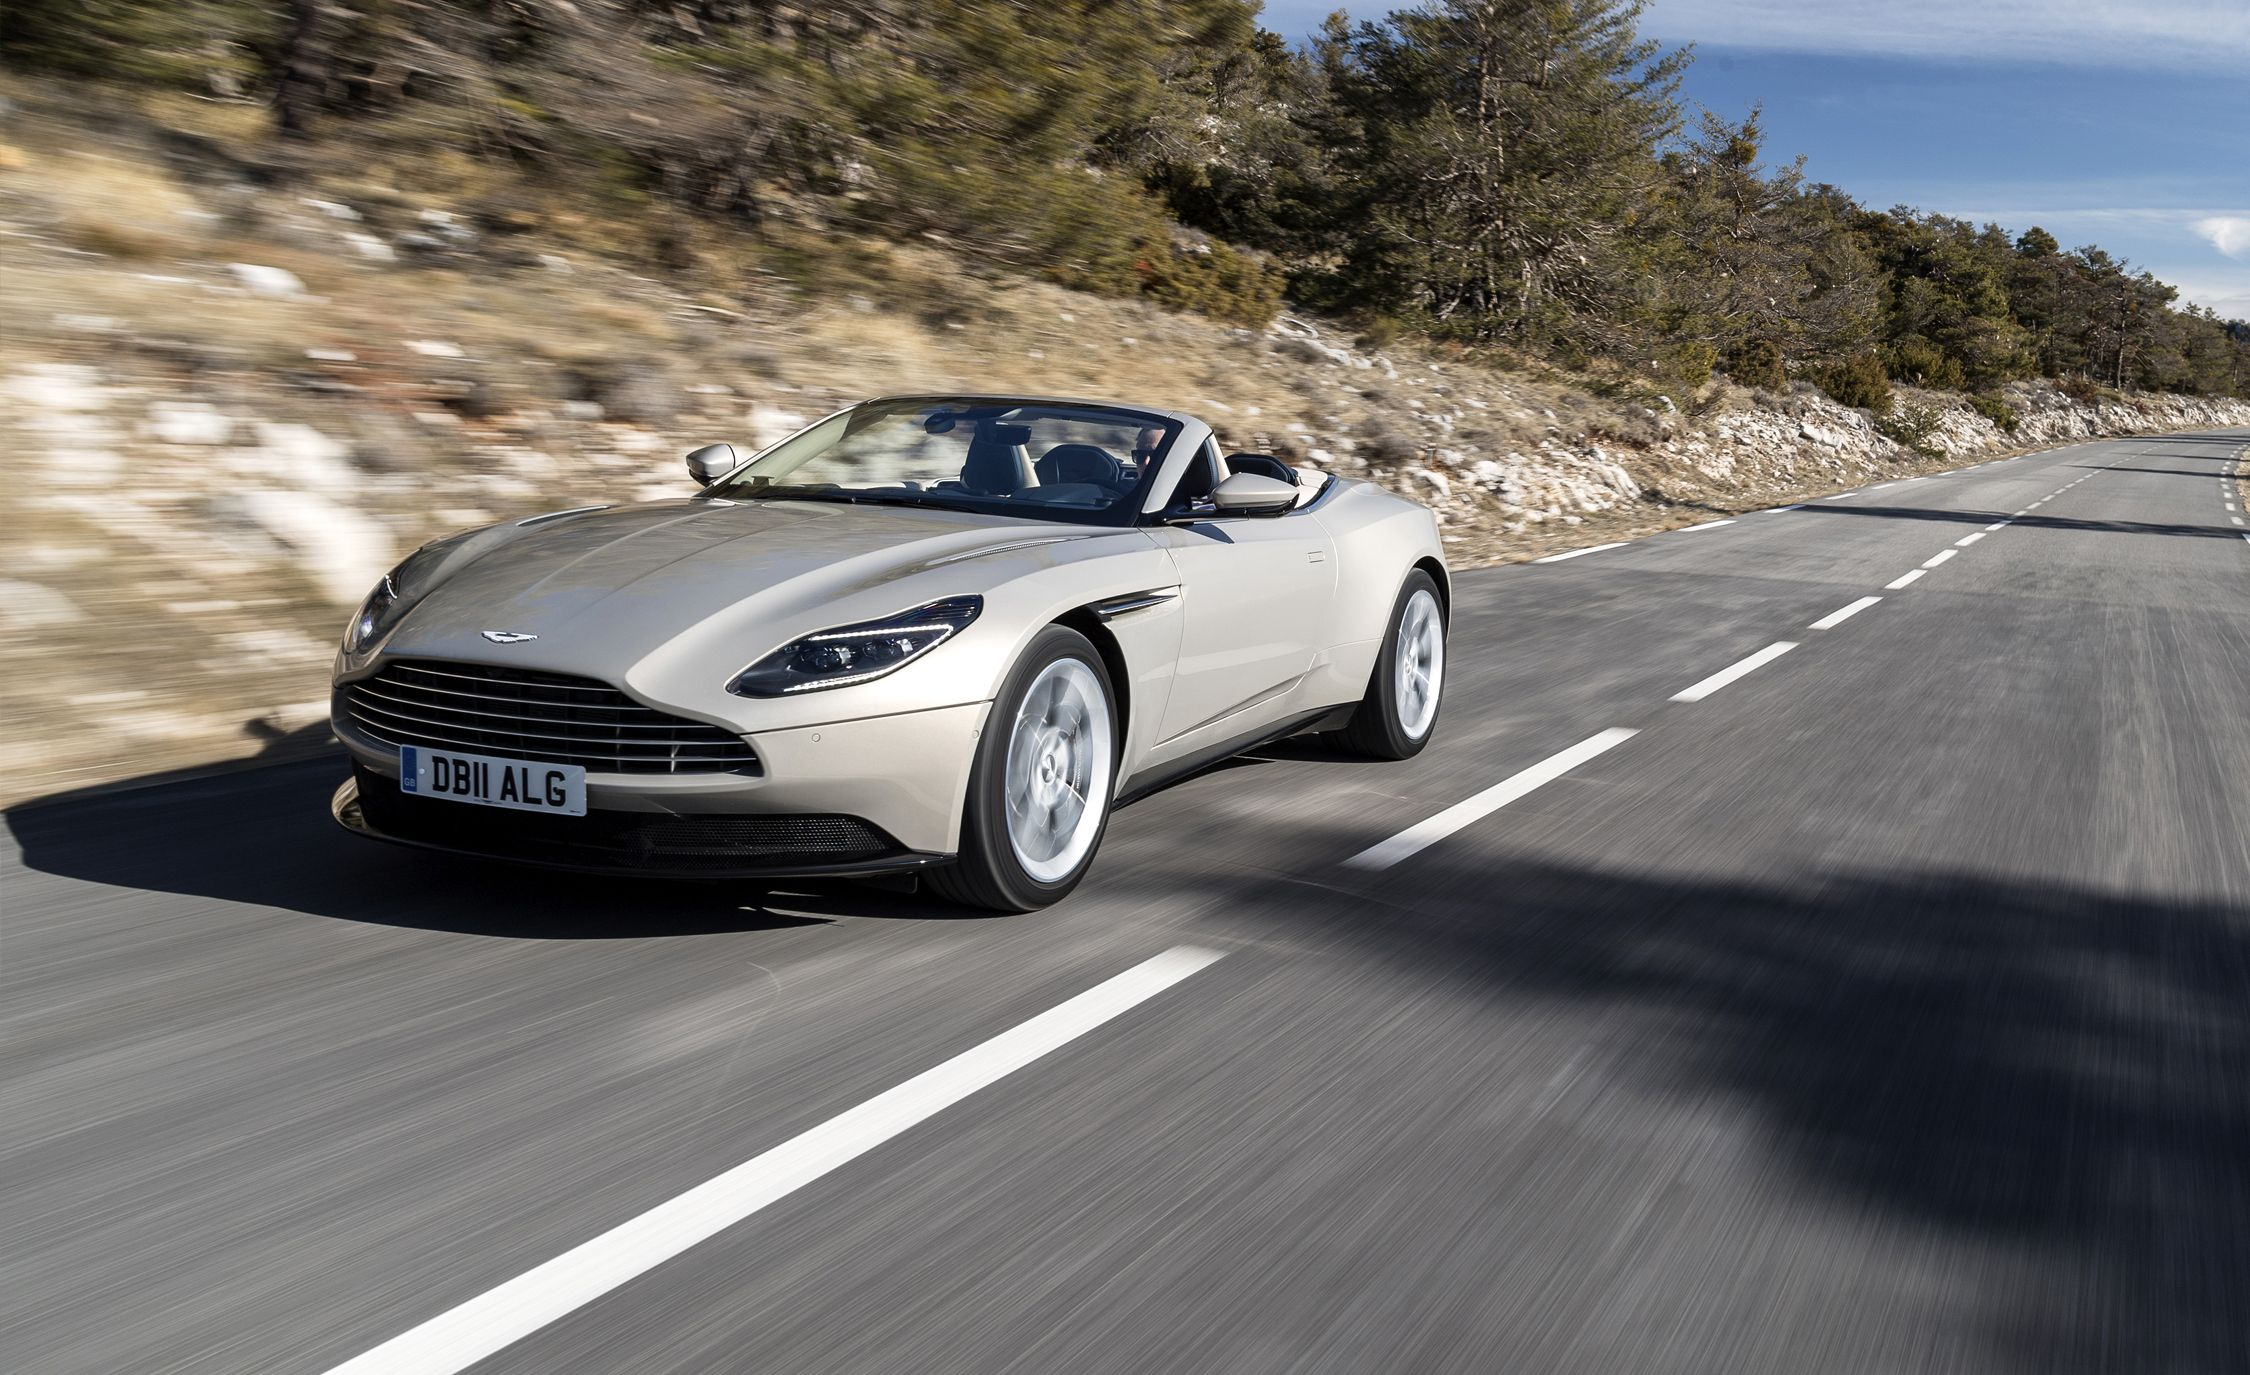 2019 aston martin db11 reviews | aston martin db11 price, photos